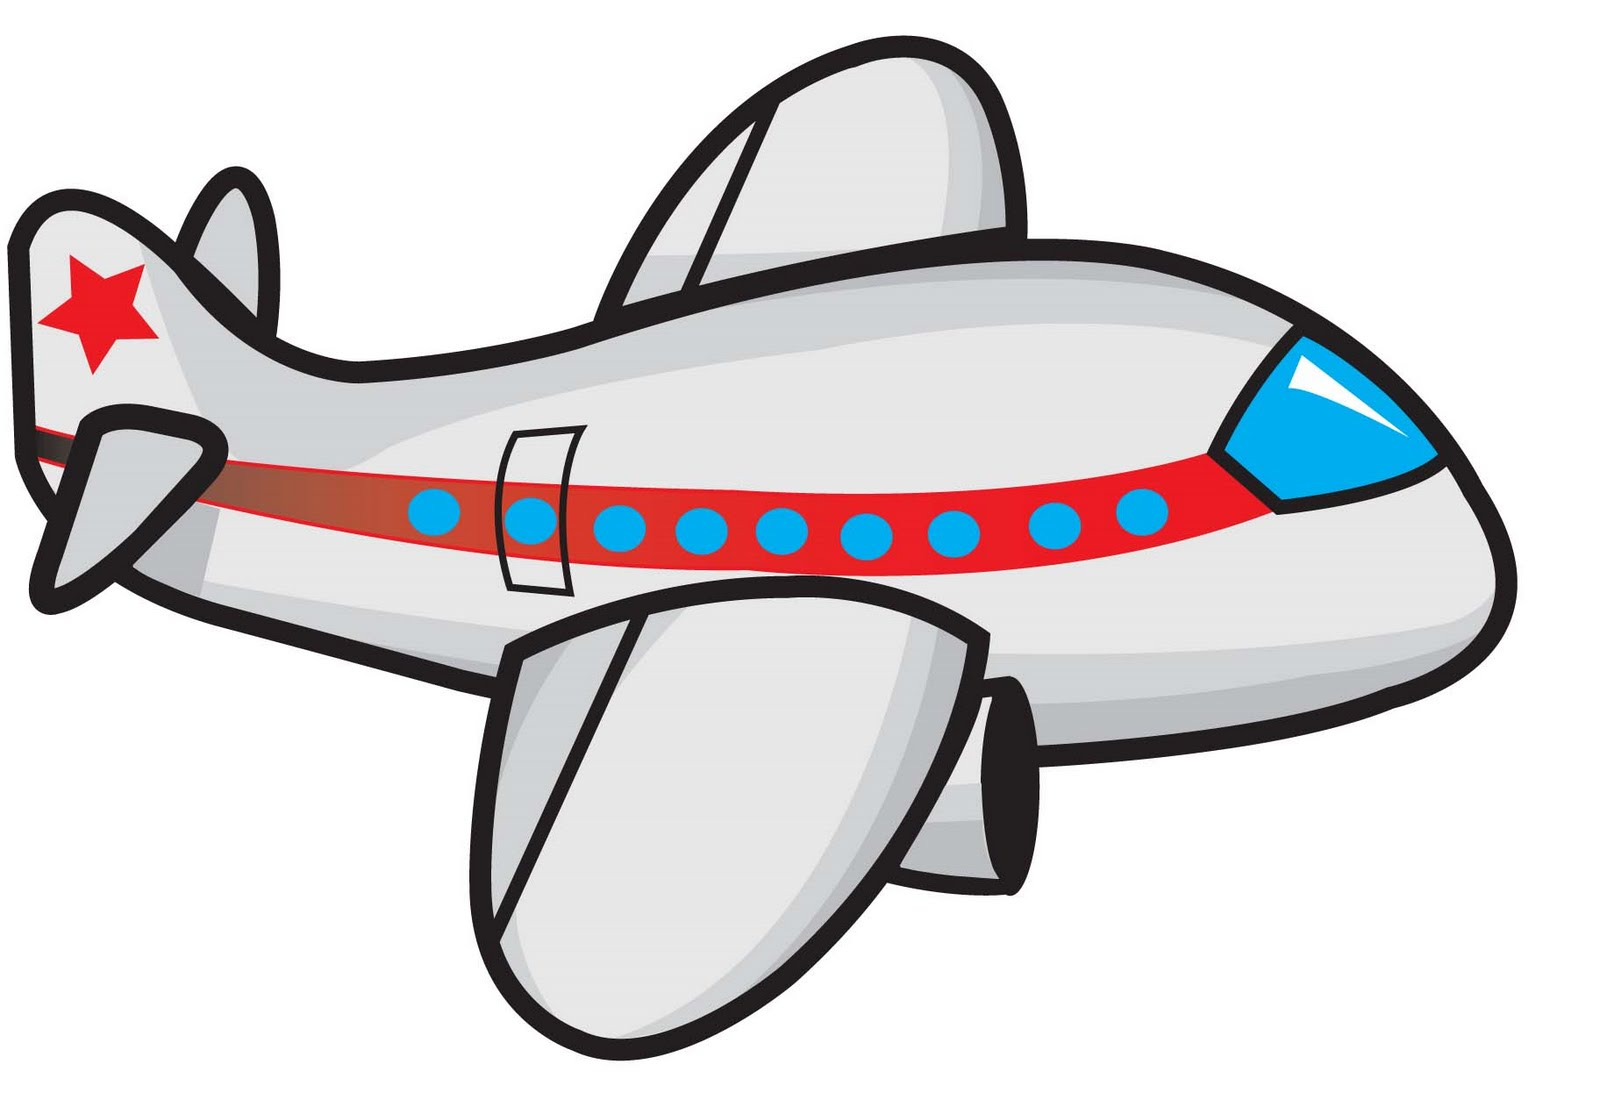 1600x1100 Toy Plane Clipart